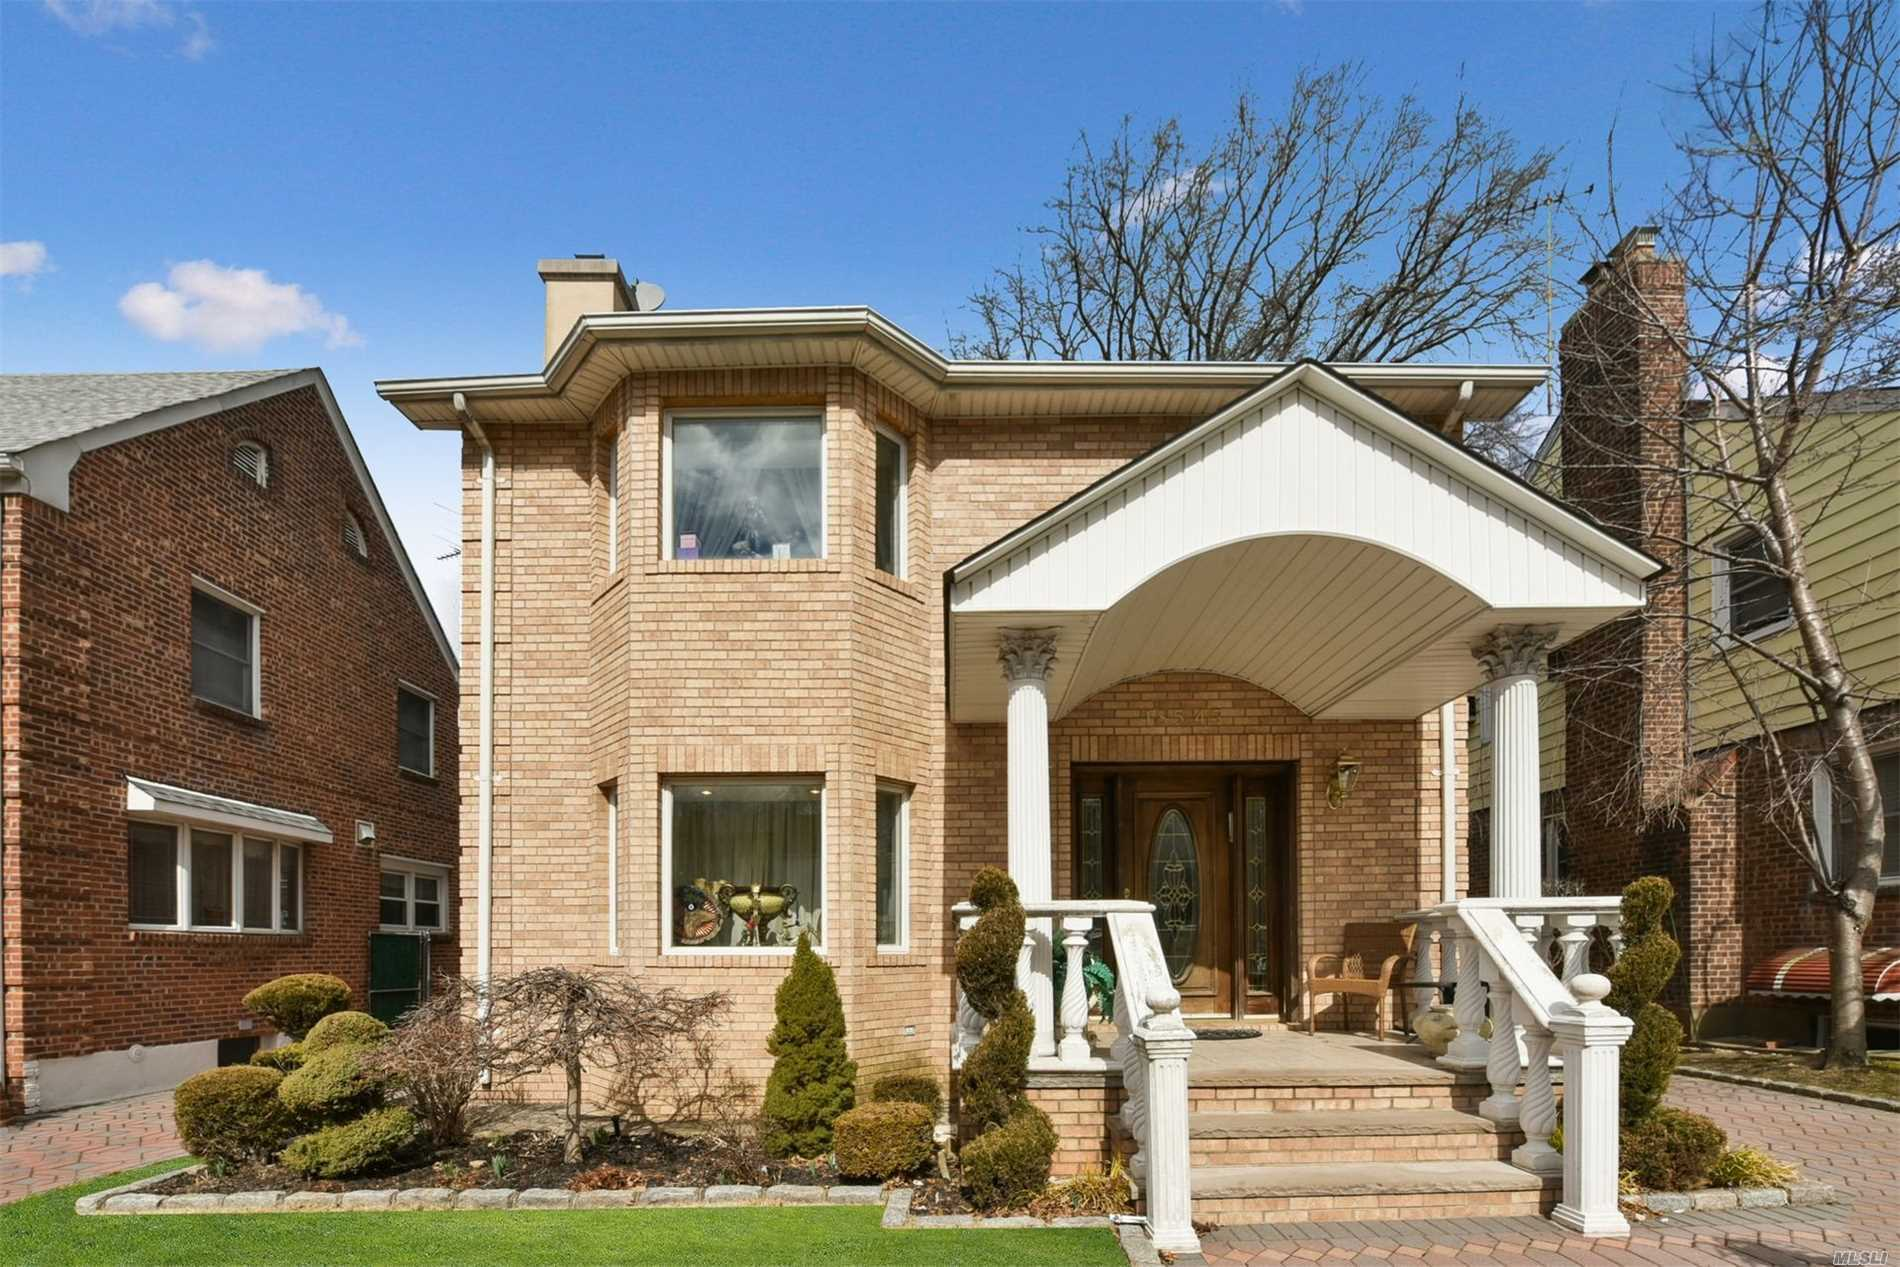 Renovated House in the heart of Jamaica Estates, the house features foyer, living room w/wood burning fireplace, large Family and Dining Room, Spacious Granite kitchen with separate breakfast area, 3.5-Bathrooms, Master Bedroom with Master bath plus additional 4-Family size bedrooms. The house also has a full stand up attic with 2-spacious rooms and closets, full finished basement with bath and a separate entrance. Entertain all your guests in a large backyard that has 1-Car garage and fish pond